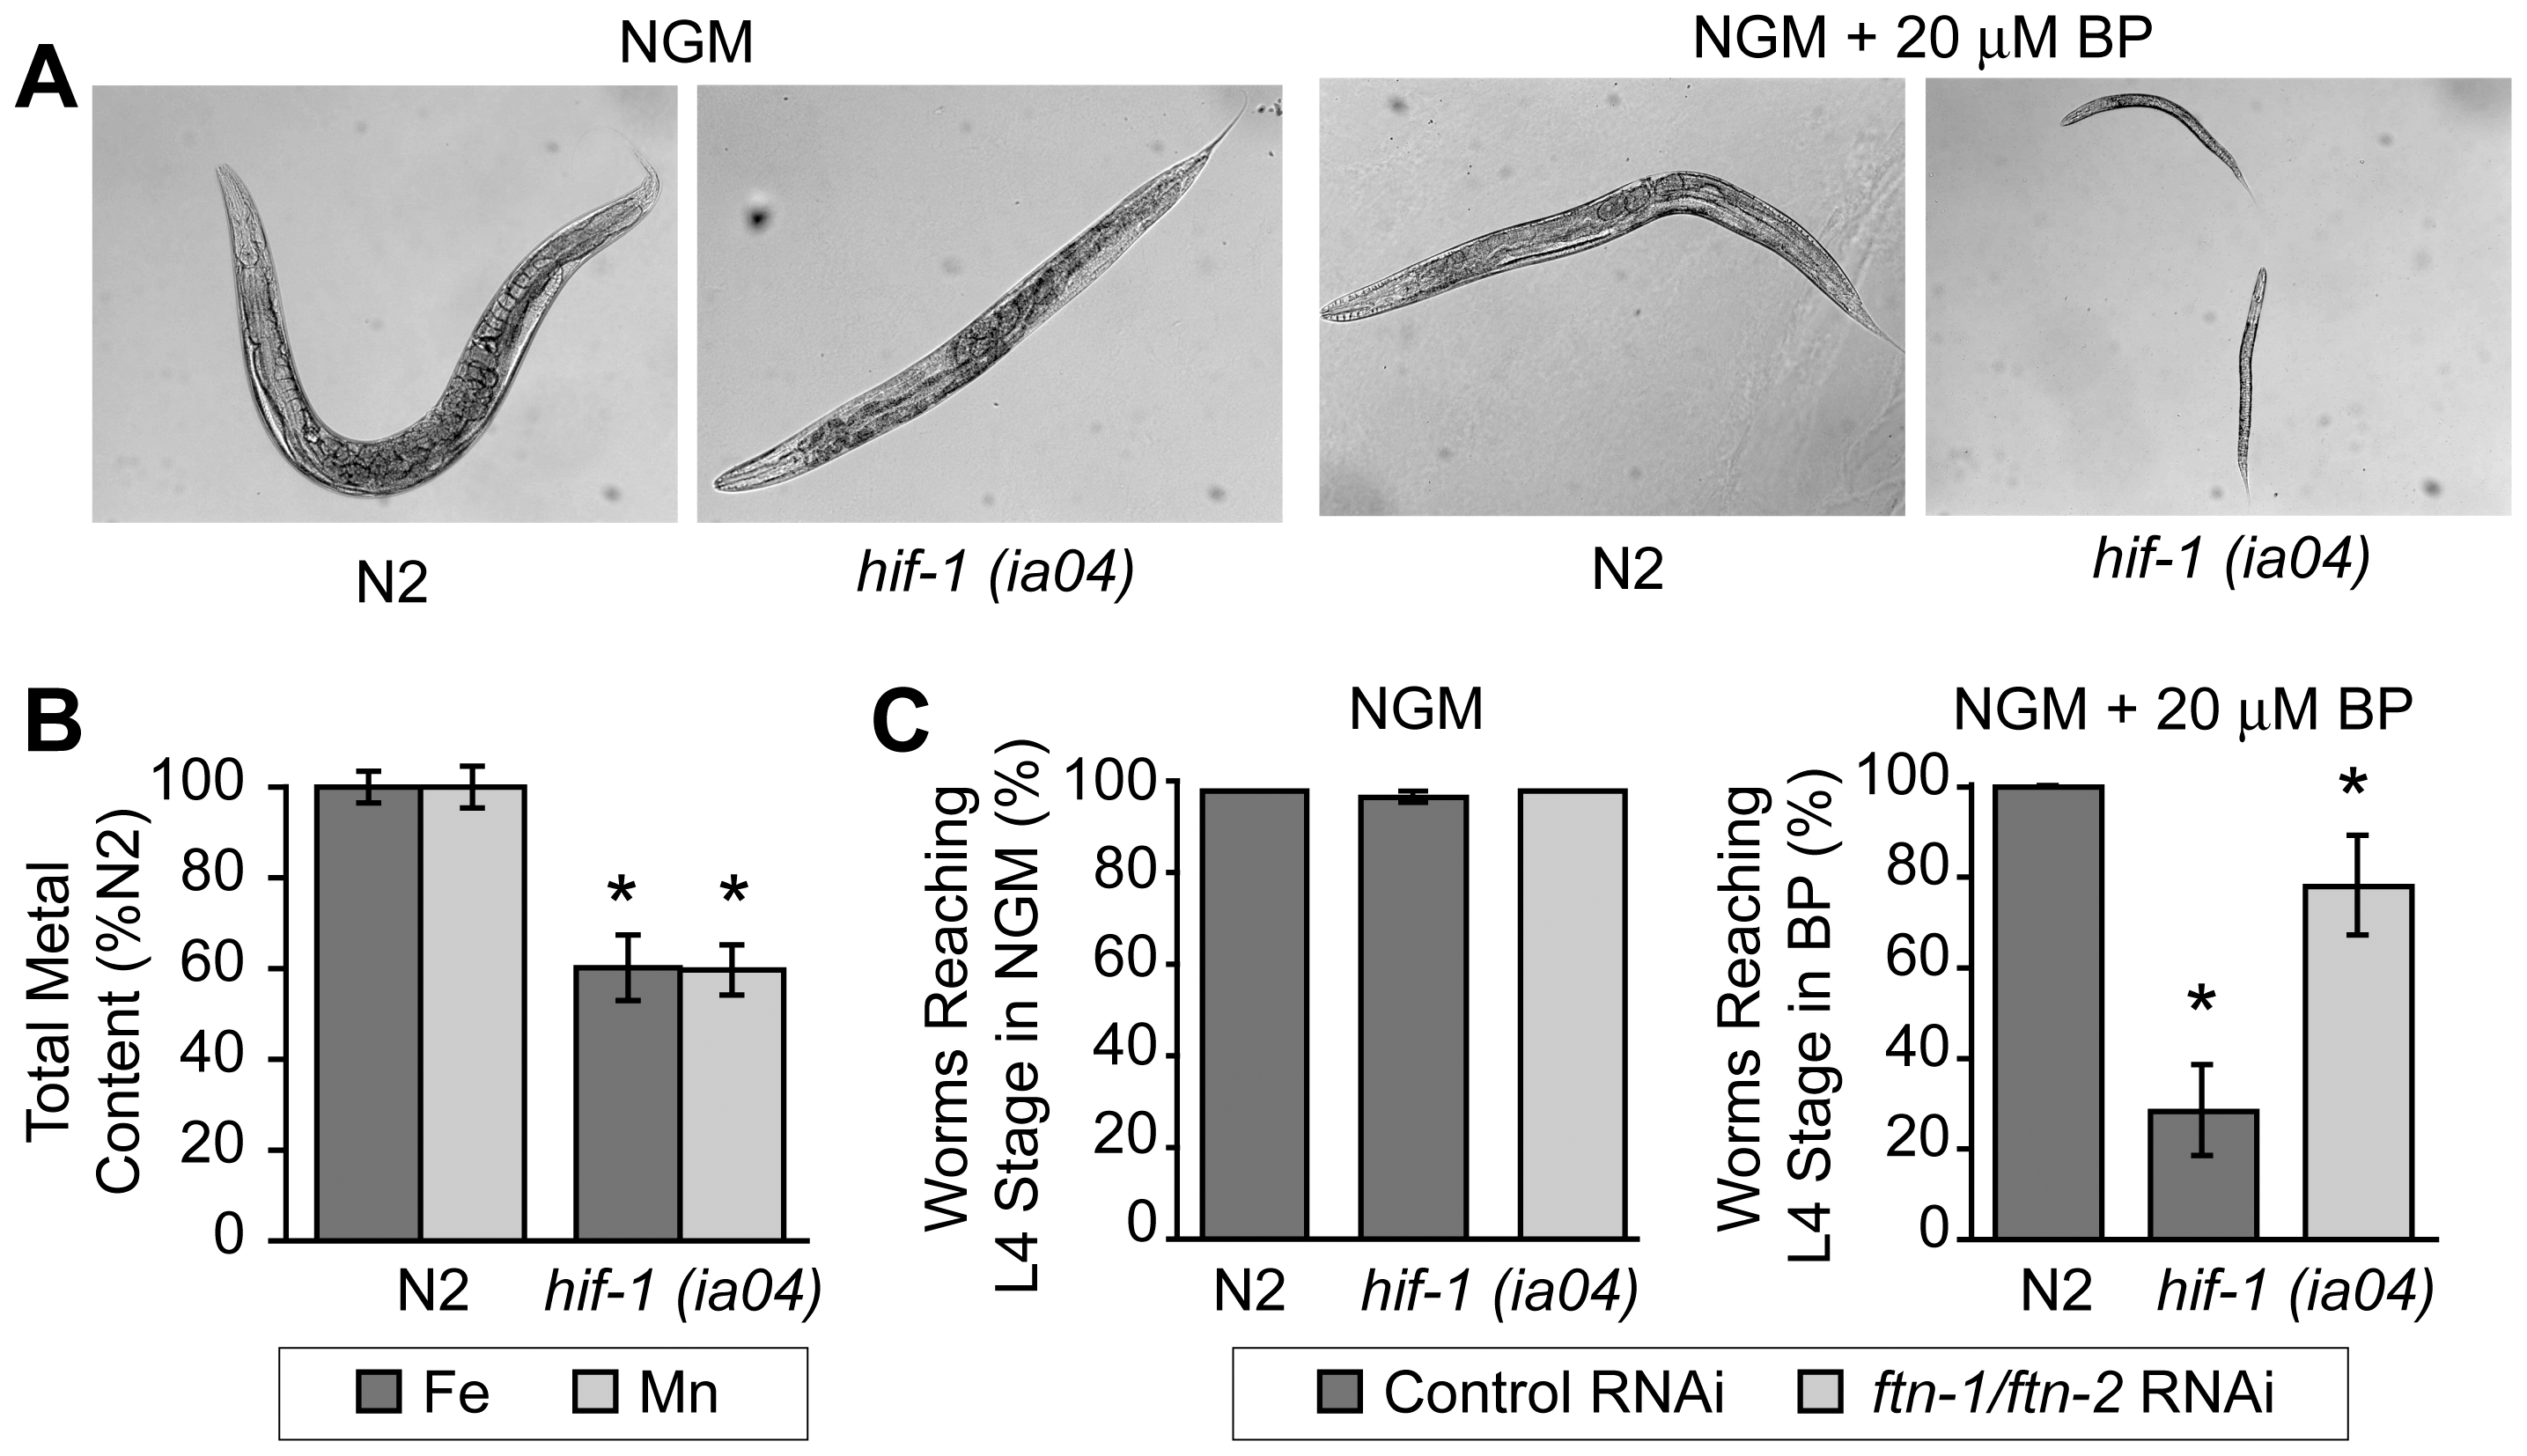 Delayed growth of <i>hif-1(ia04)</i> mutant animals during iron deficiency is rescued by <i>ftn-1</i> and <i>ftn-2</i> RNAi.